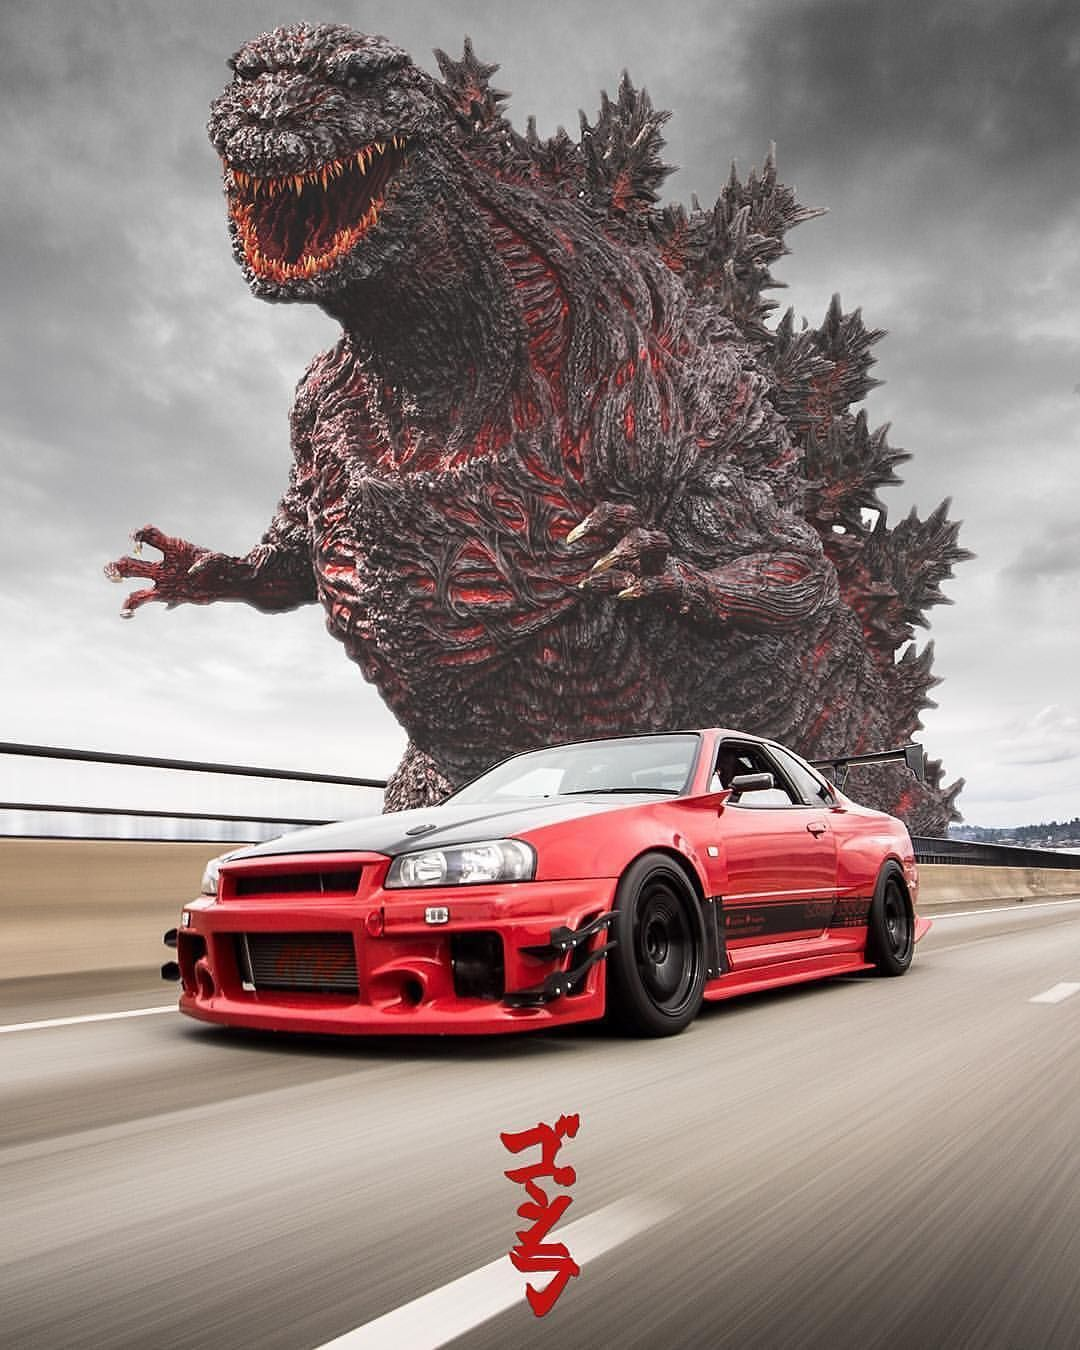 Markwang Cargarage Supercarspassion Daily Cars 365 Jdm Jdmuk Modified Drift Stance Nissan Gtr Skyline Nissan Skyline Gtr R32 Nissan Skyline